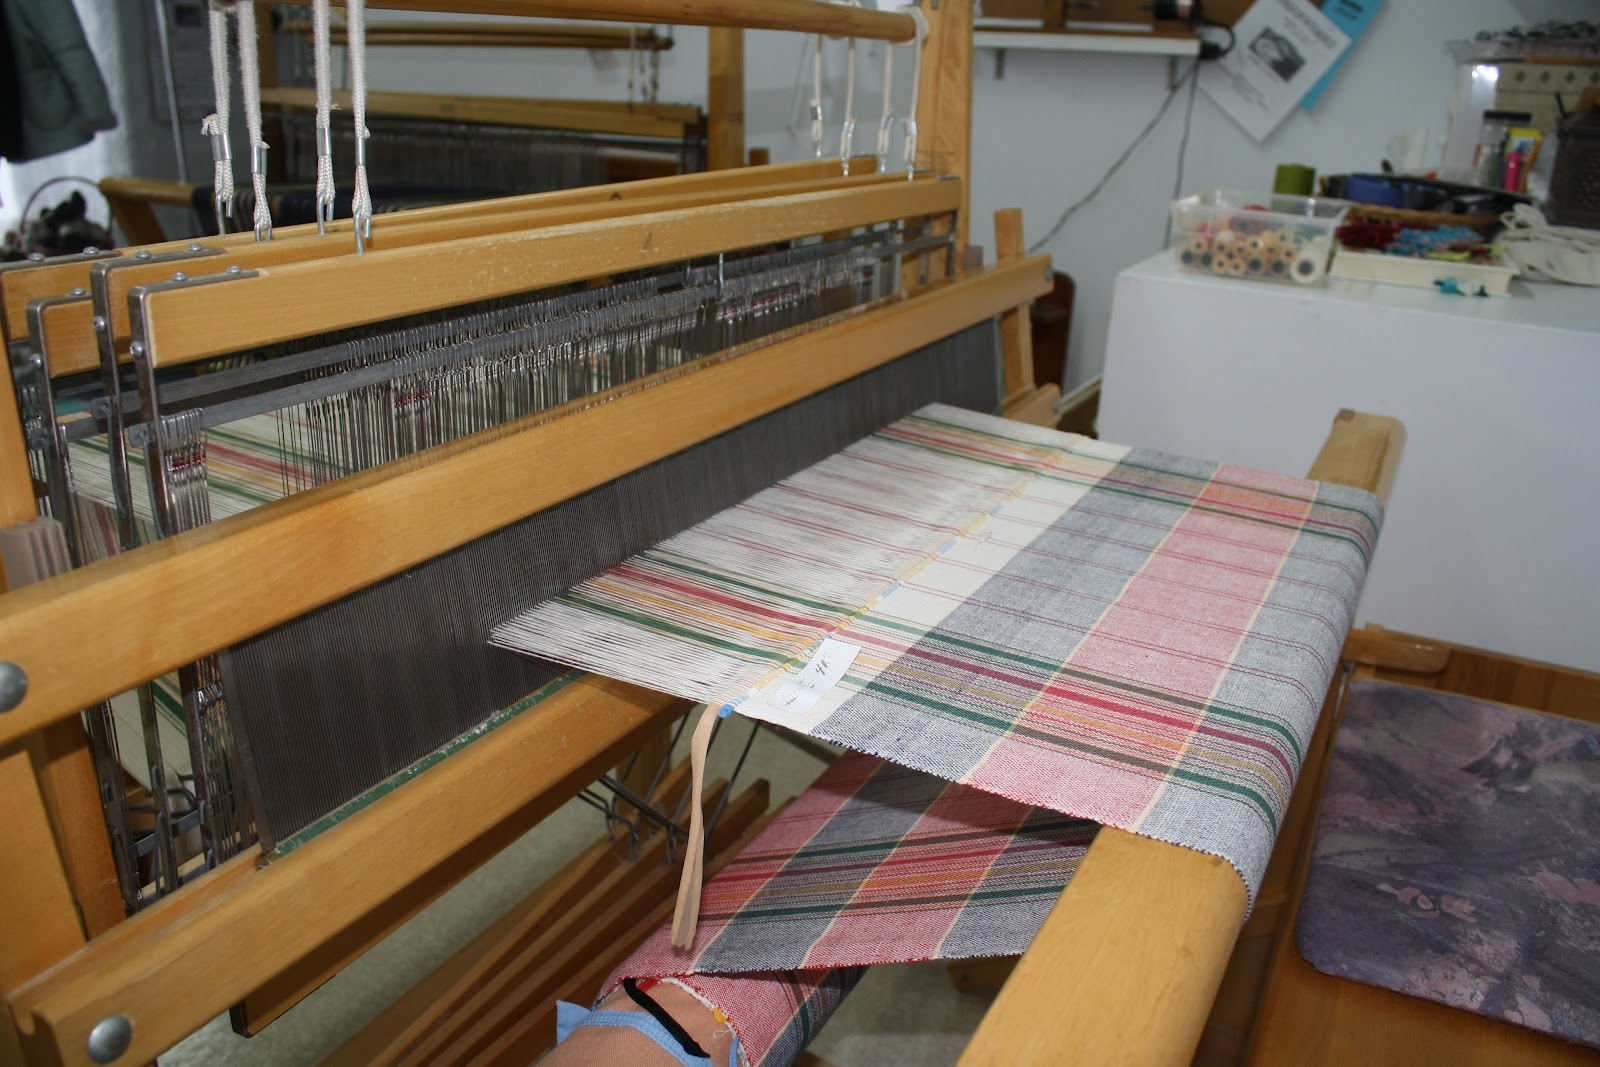 cercle de fermi res st lambert de lauzon local de tissage On métier artisanat modification textile